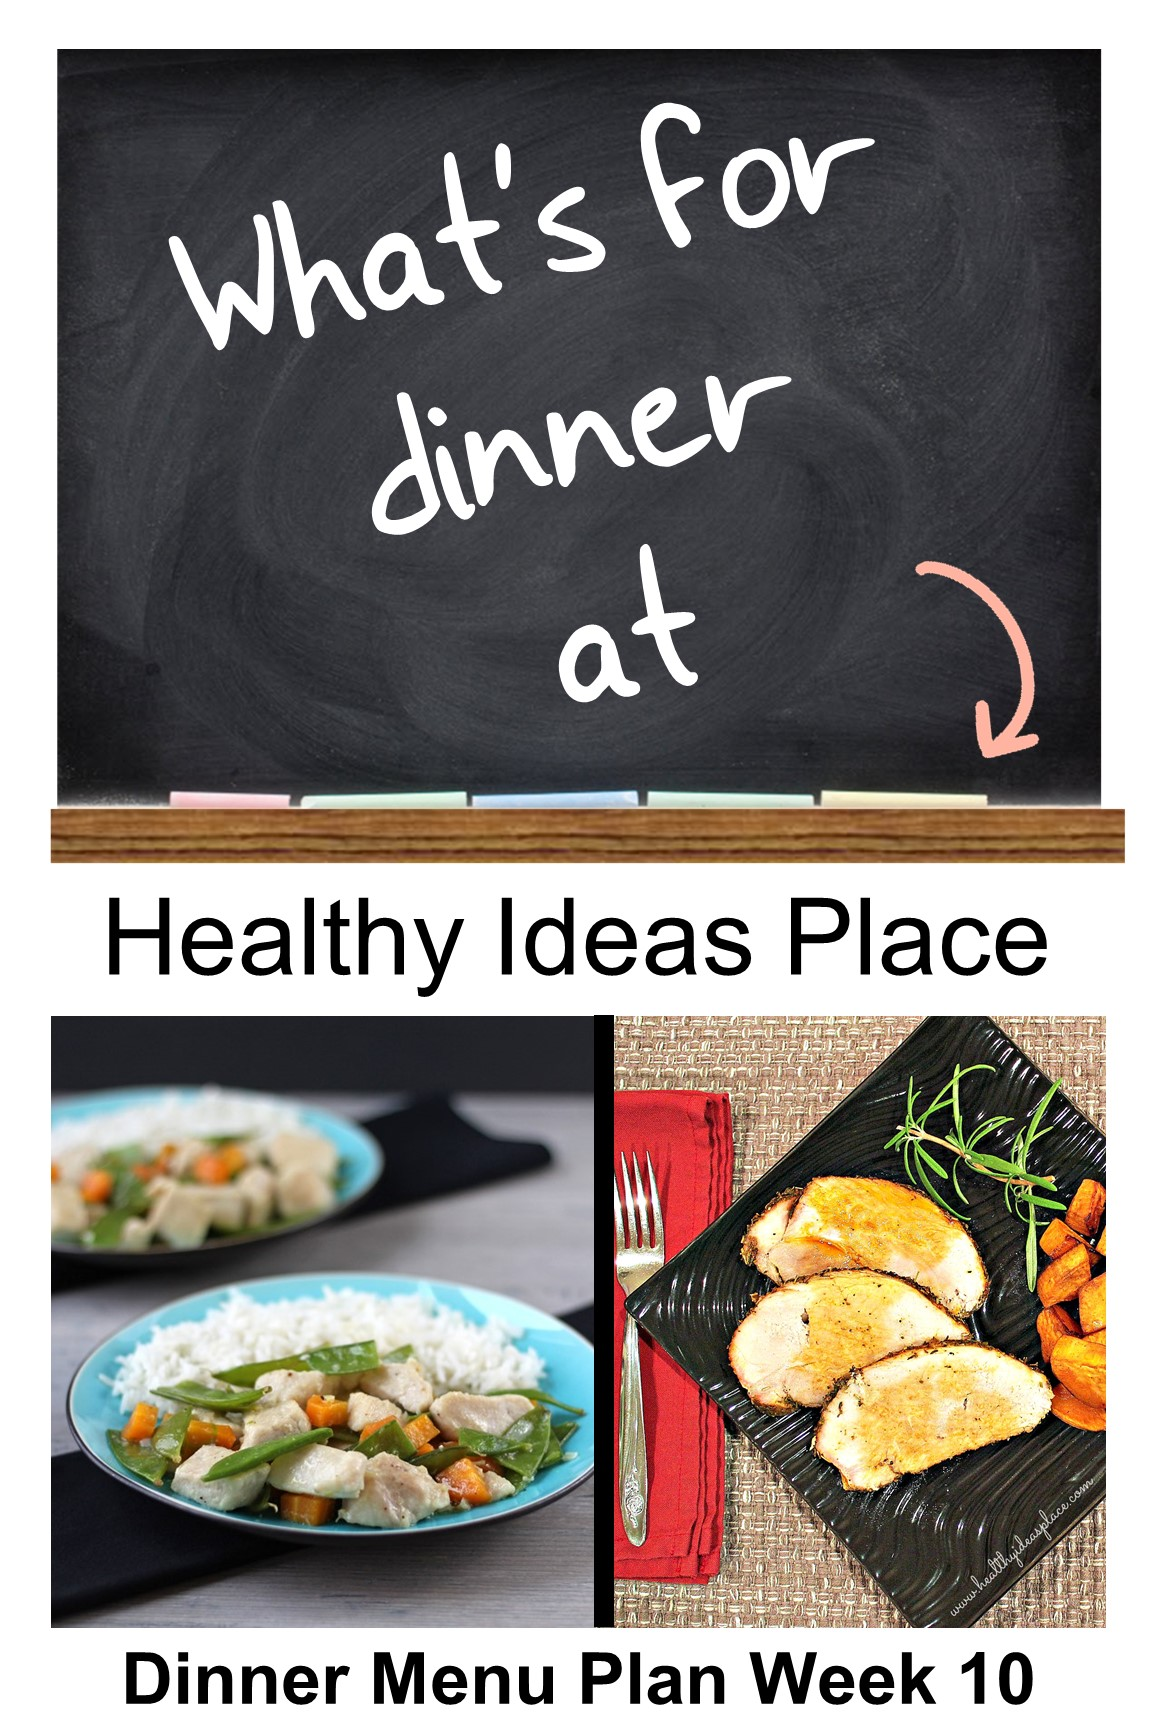 Looking for some healthy dinner menu inspiration? Take a look at our weekly dinner menu at Healthy Ideas Place.